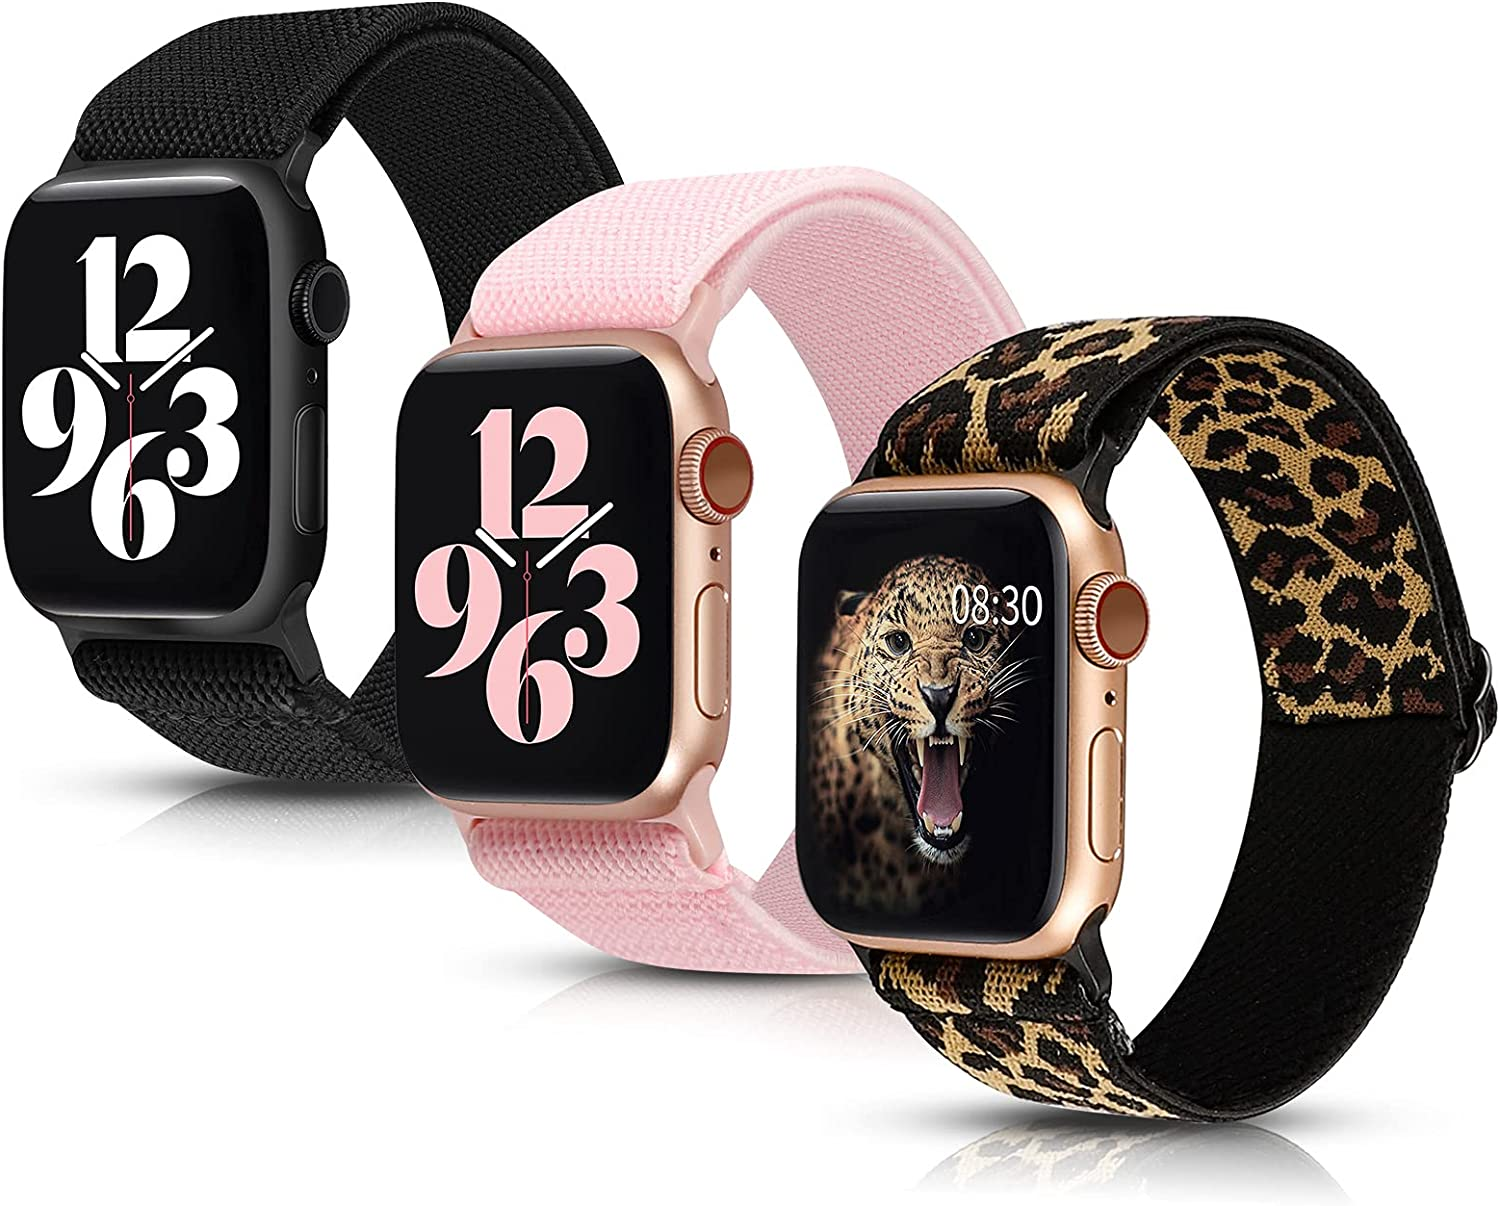 Moolia 3 Packs Stretchy Nylon Loop Compatible with Apple Watch Band 42mm 44mm Women, Adjustable Soft Elastic Strap Sport Men for iWatch Series SE 6 5 4 3 2 1, Black/Leopard/Pink